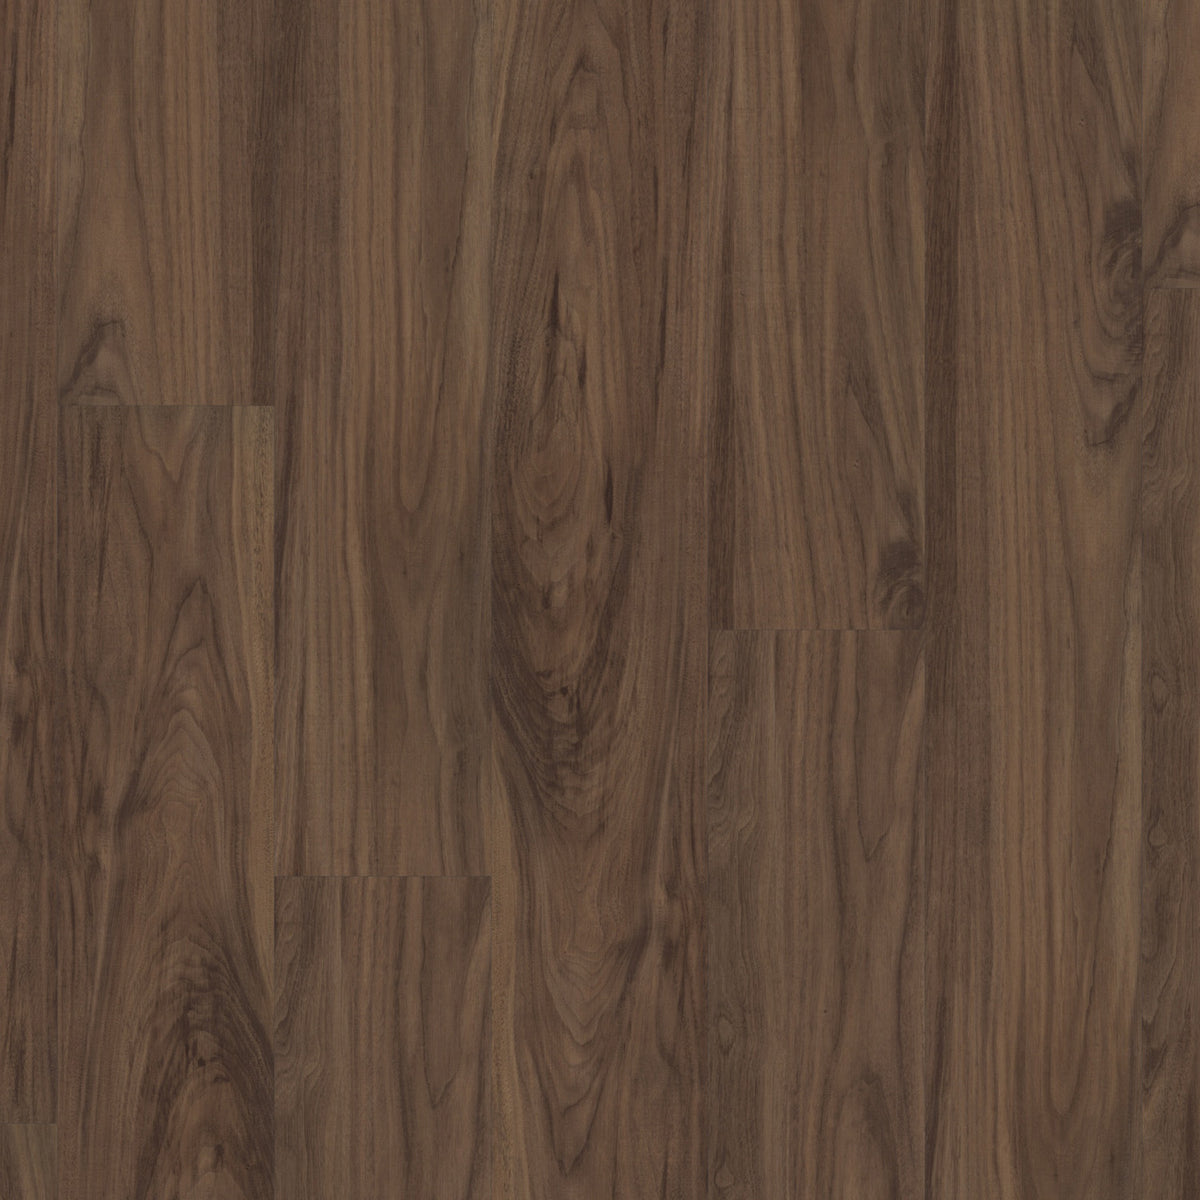 Karndean Korlok Reserve 48 in. x 7 in. Luxury Vinyl Tile - Texan Whiskey Walnut